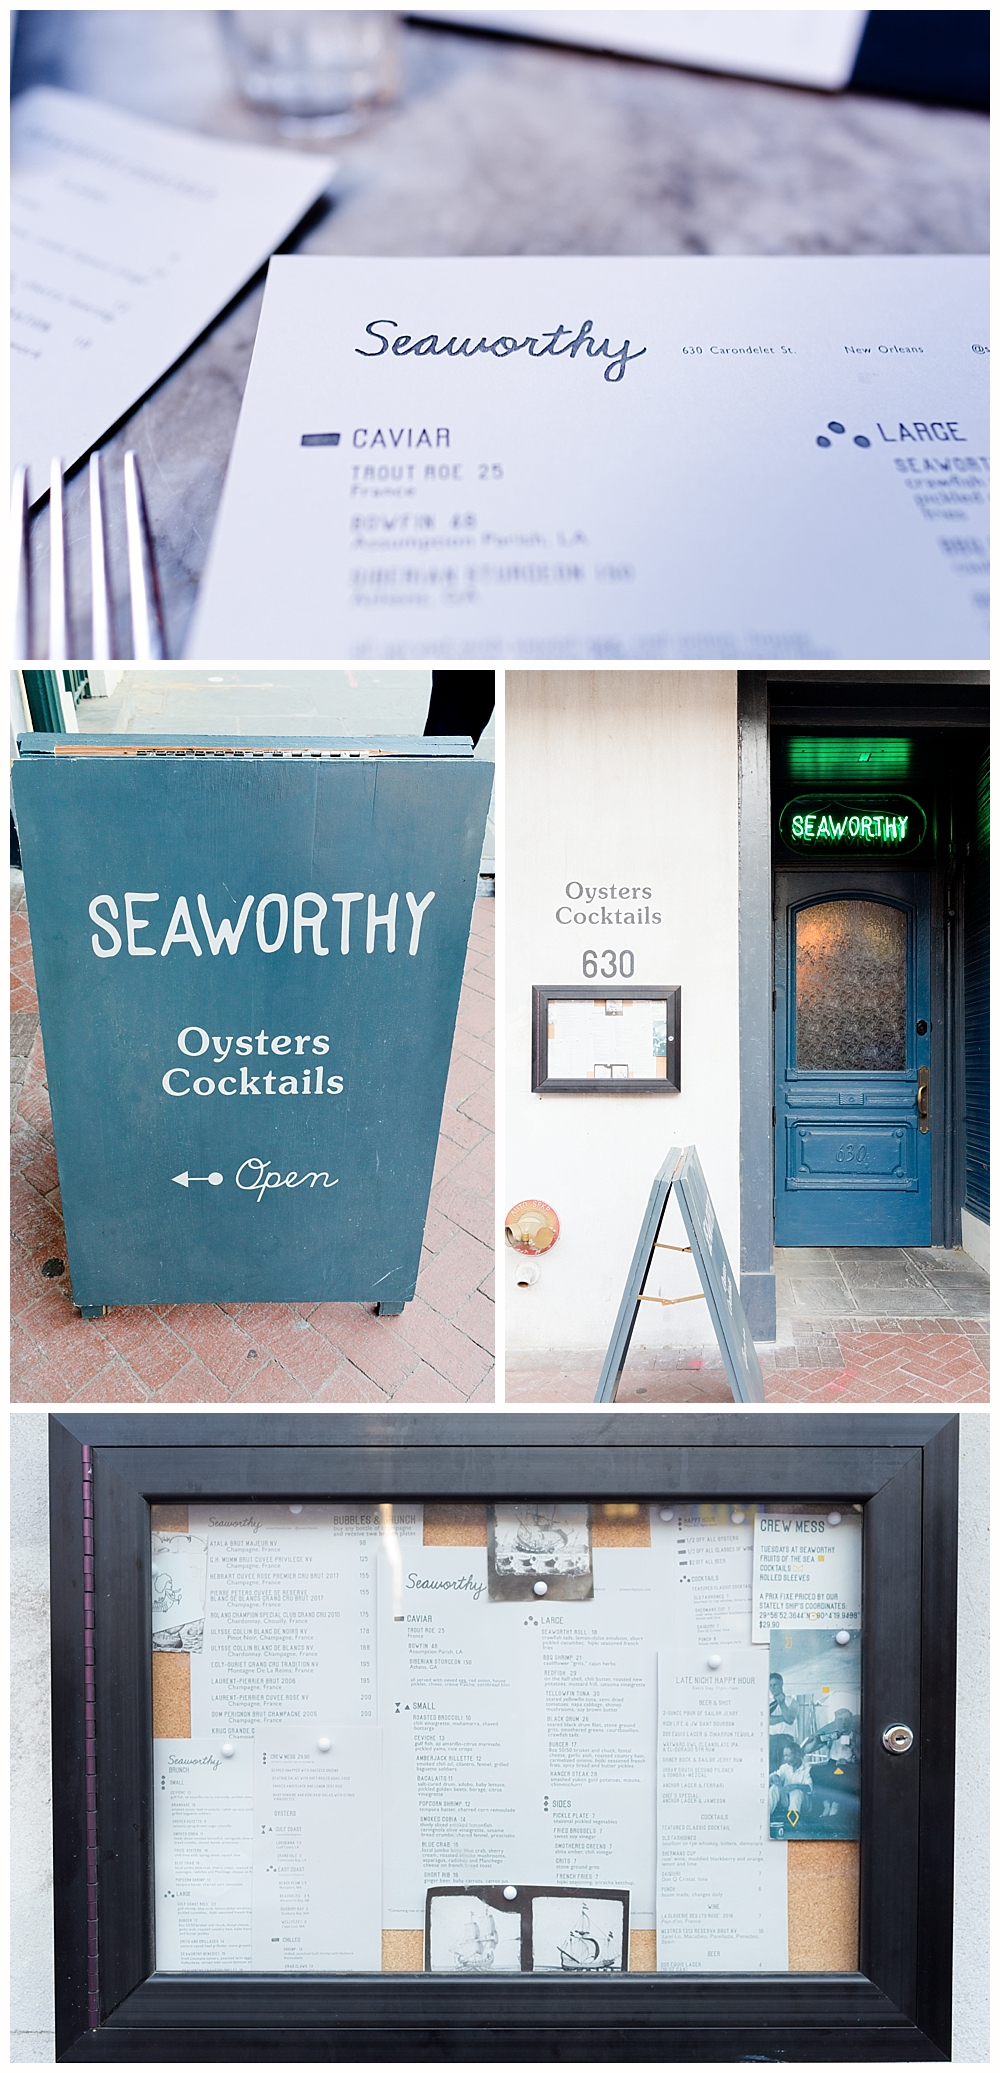 Seaworthy - New Orleans seafood restaurant review